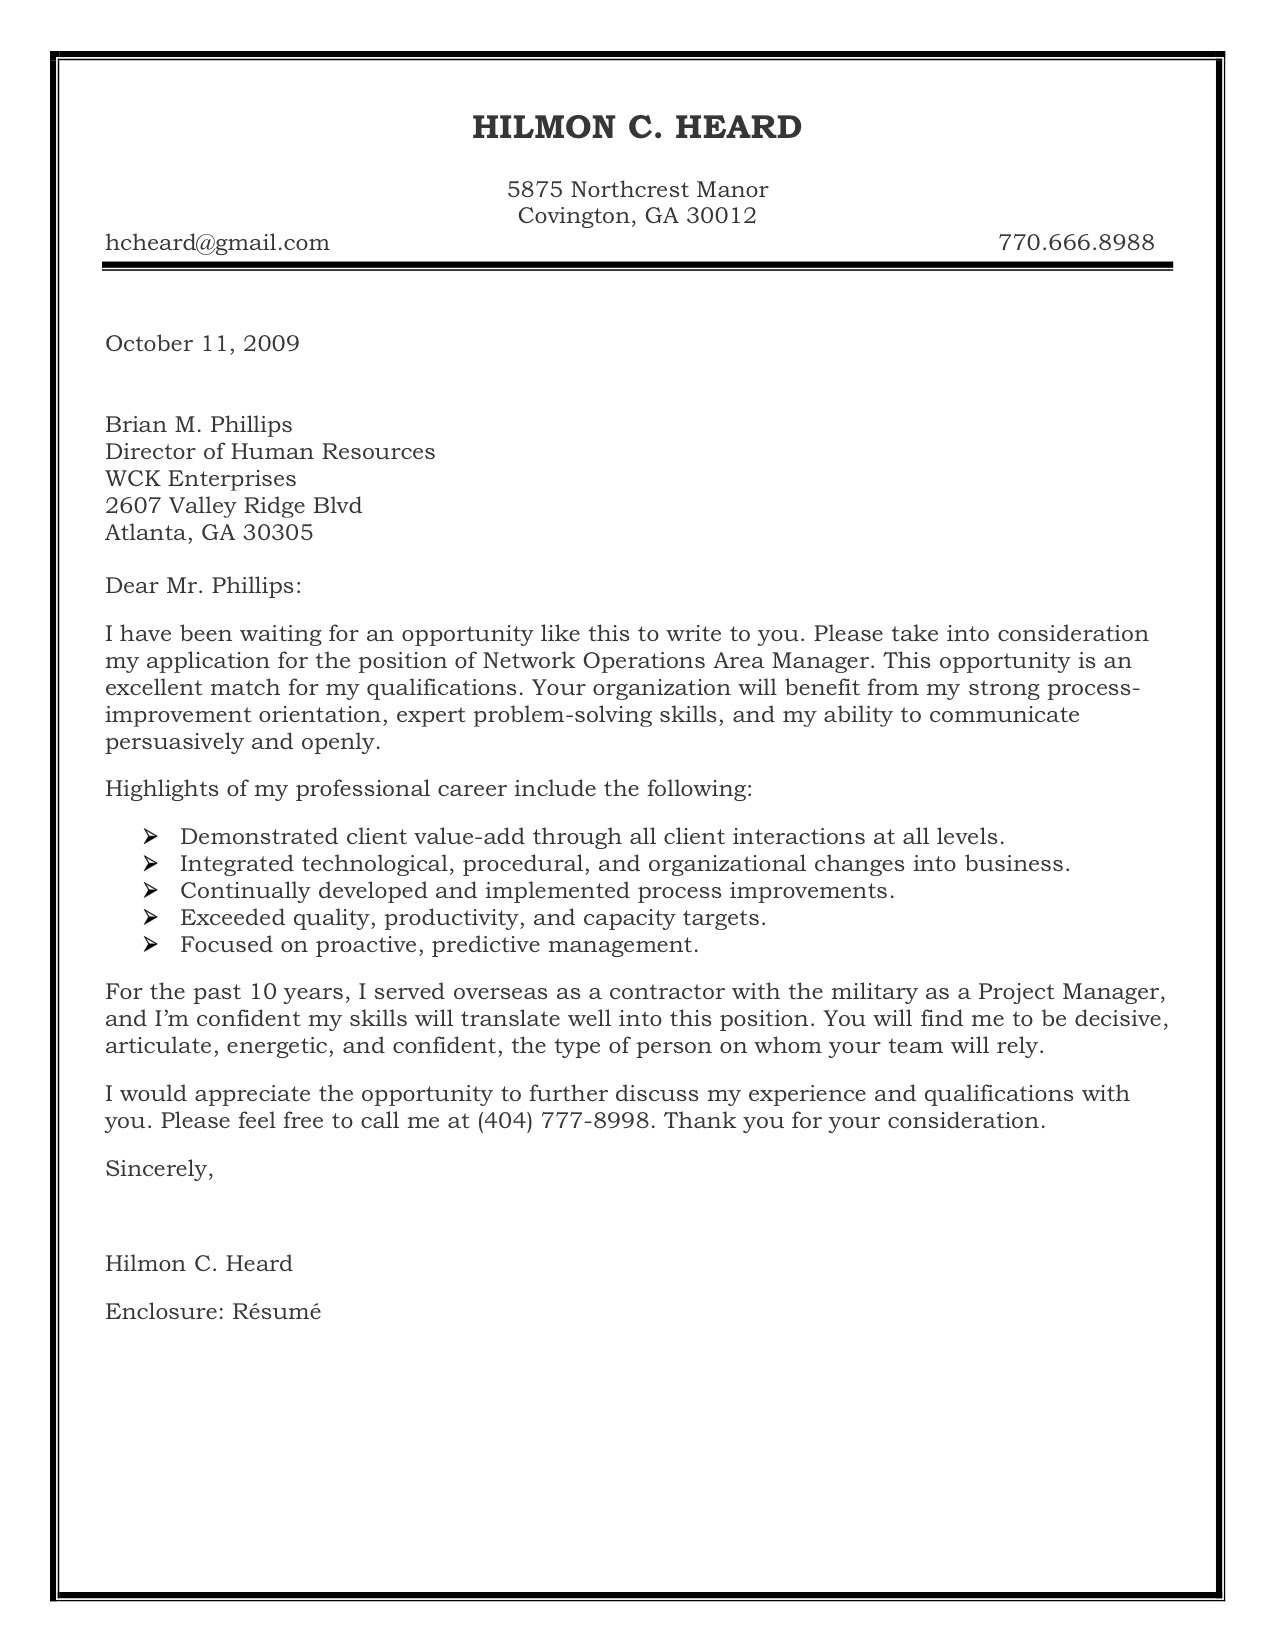 kiser operations sample cover letter Cover letter block format spacing ...